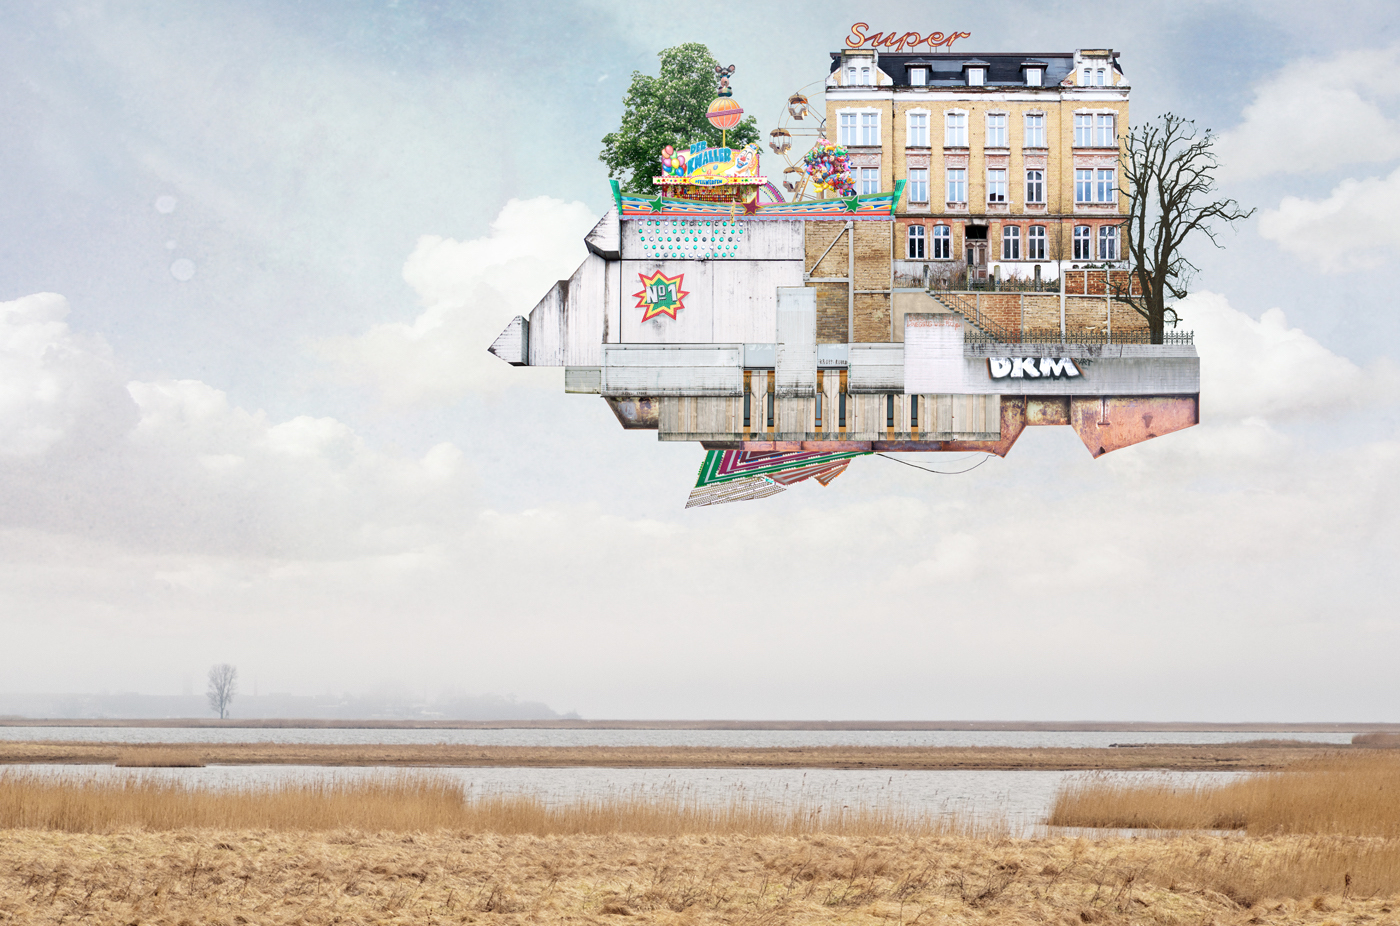 Matthias Jung's Collage Houses Redefine Surreal Architecture